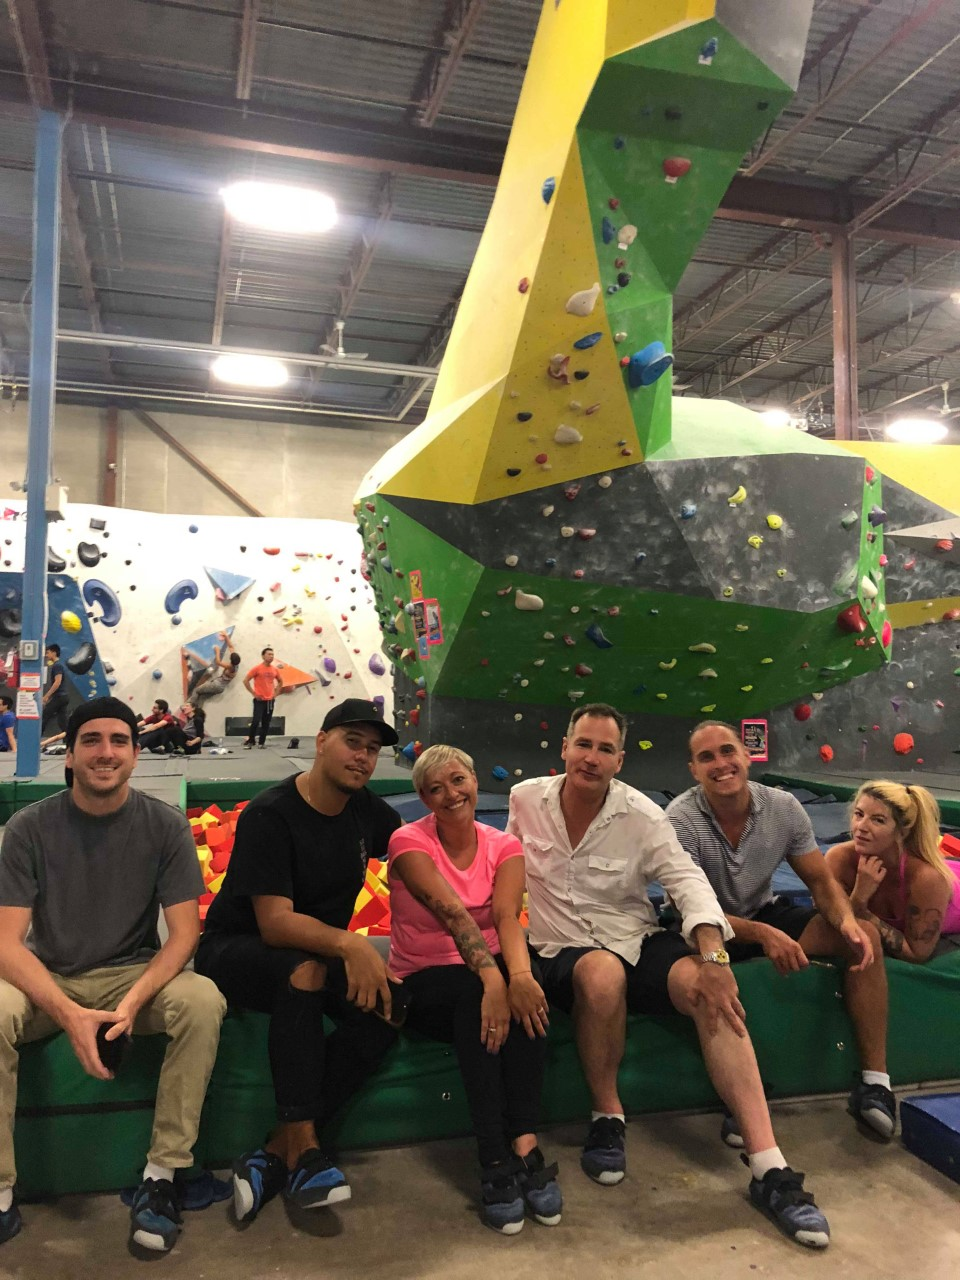 six bloggers from Toronto come bouldering at Hub climbing, raymi, Casie Stewart, Joel Levy, Steven Barnko, Martin Dasko